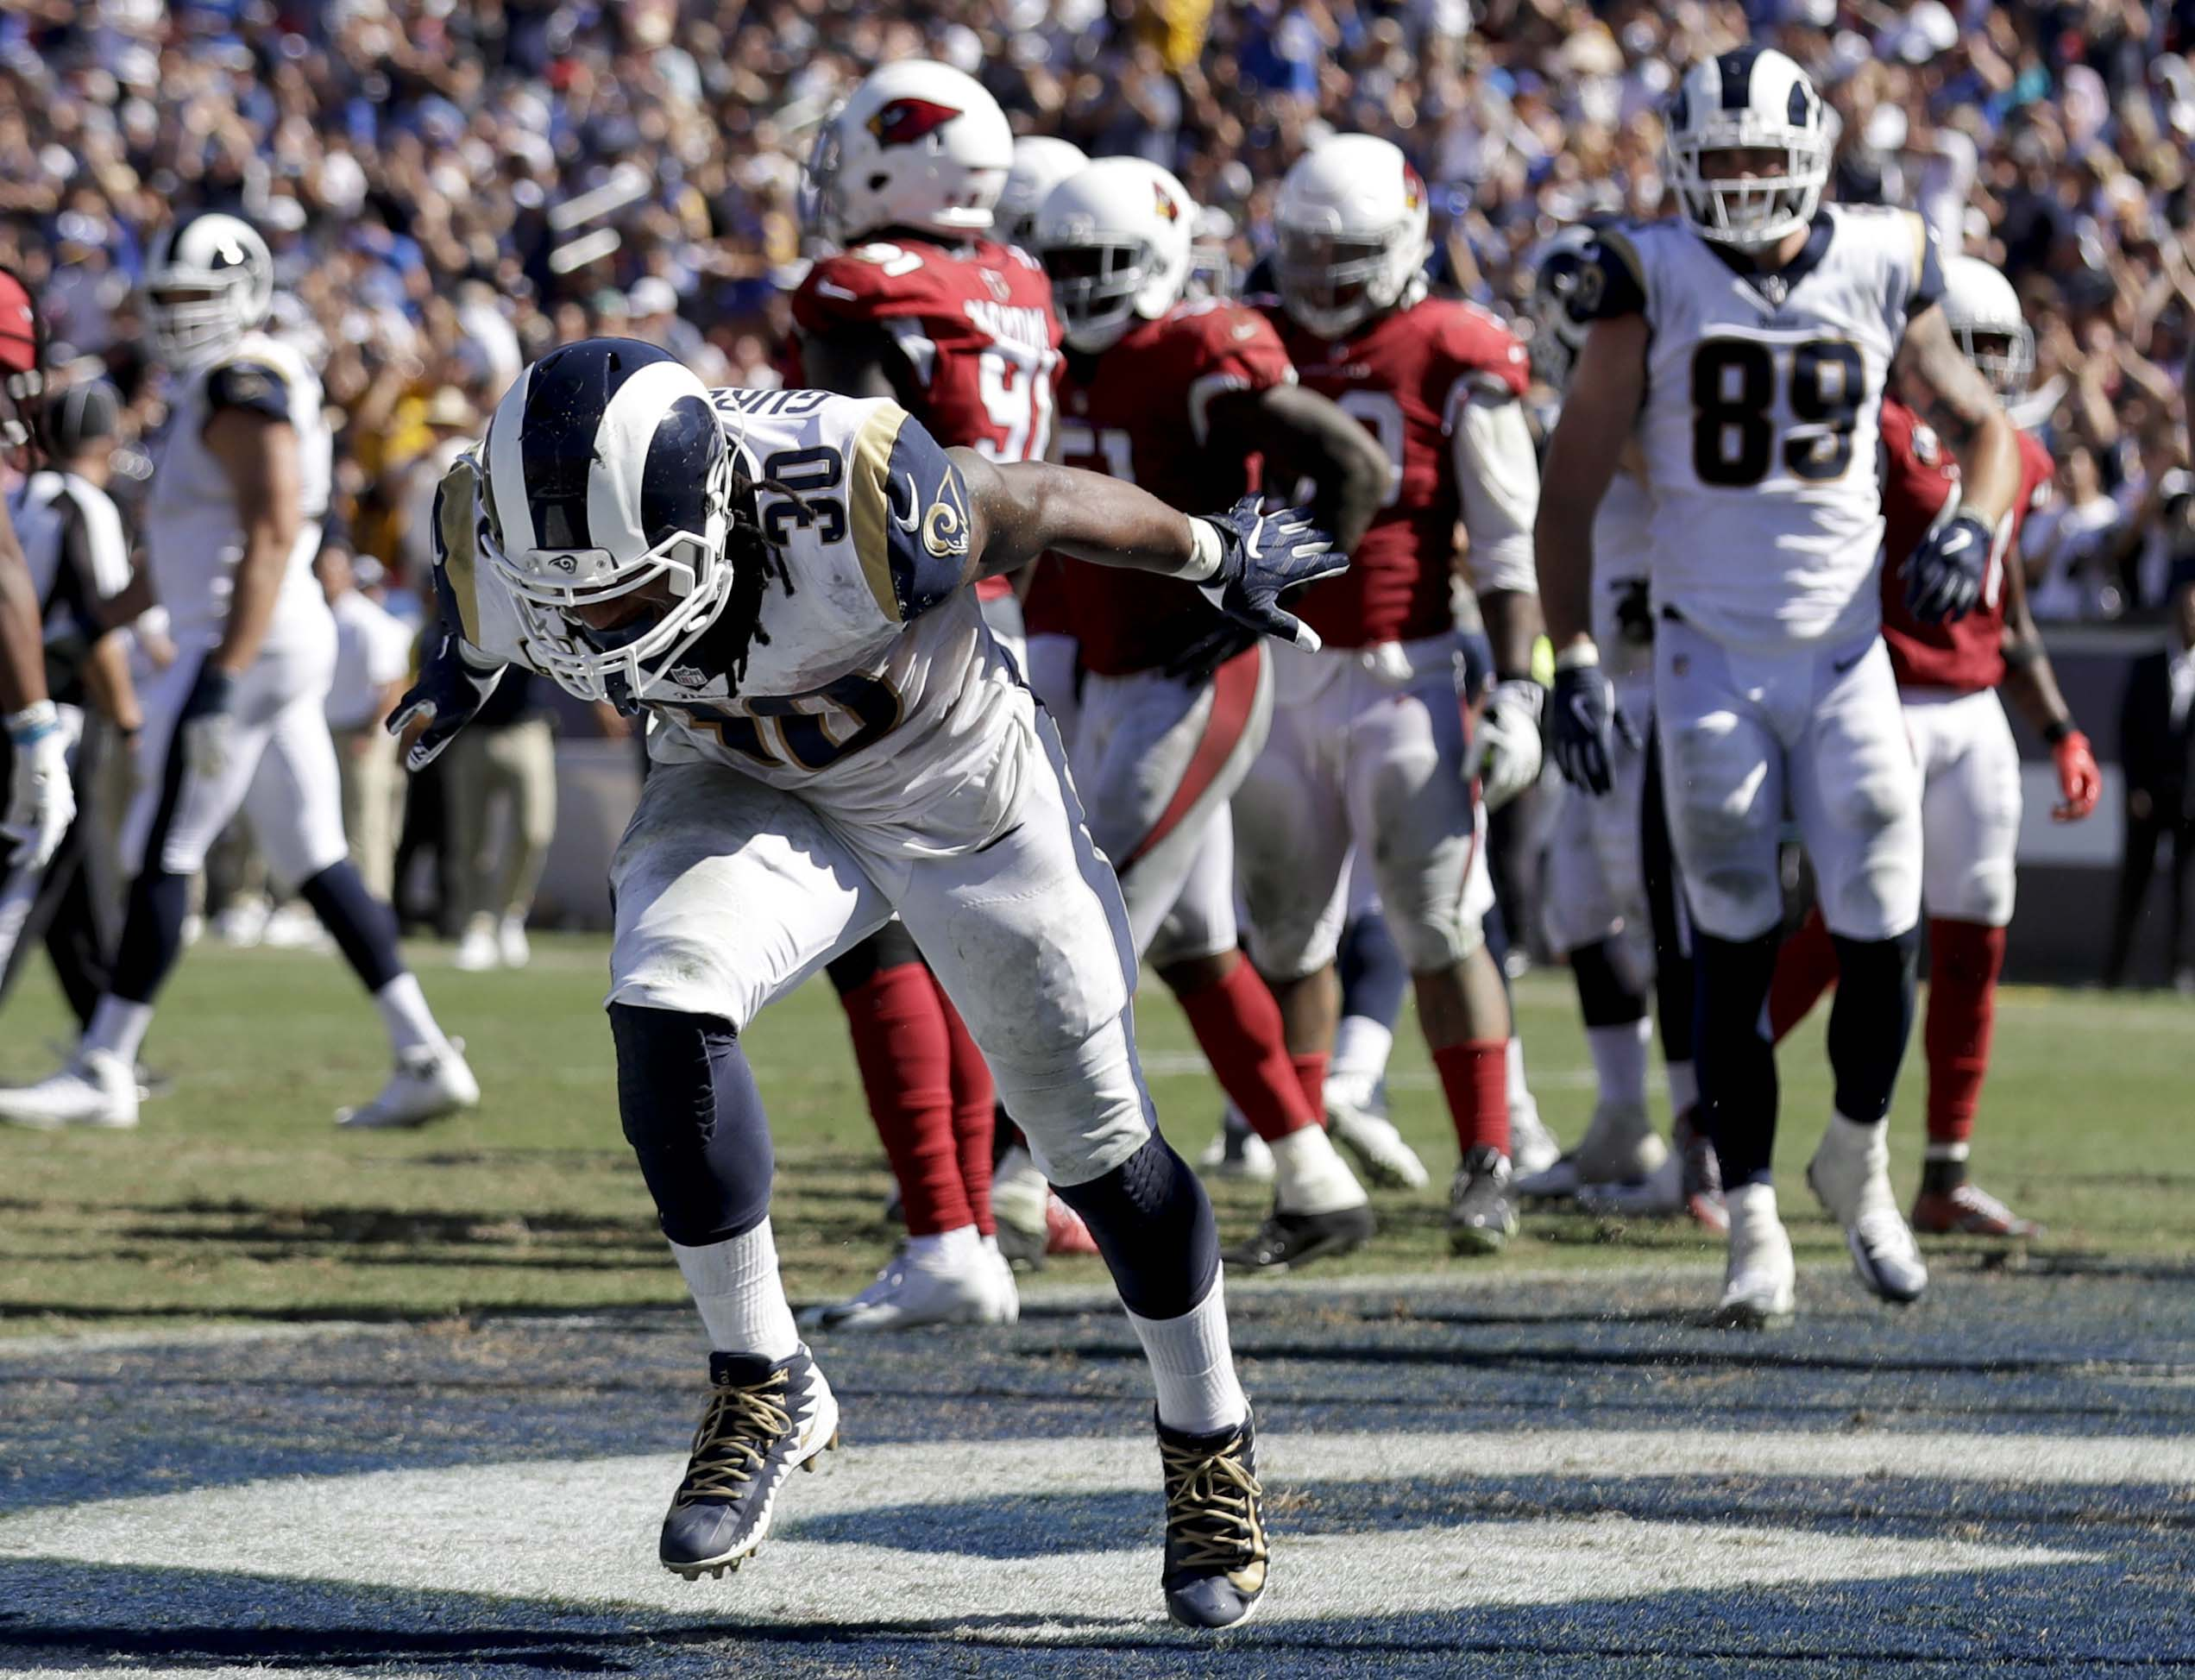 Los Angeles Rams running back Todd Gurley celebrates after scoring during the second half of an NFL football game against the Arizona Cardinals Sunday, Sept. 16, 2018, in Los Angeles. (AP Photo/Marcio Jose Sanchez)